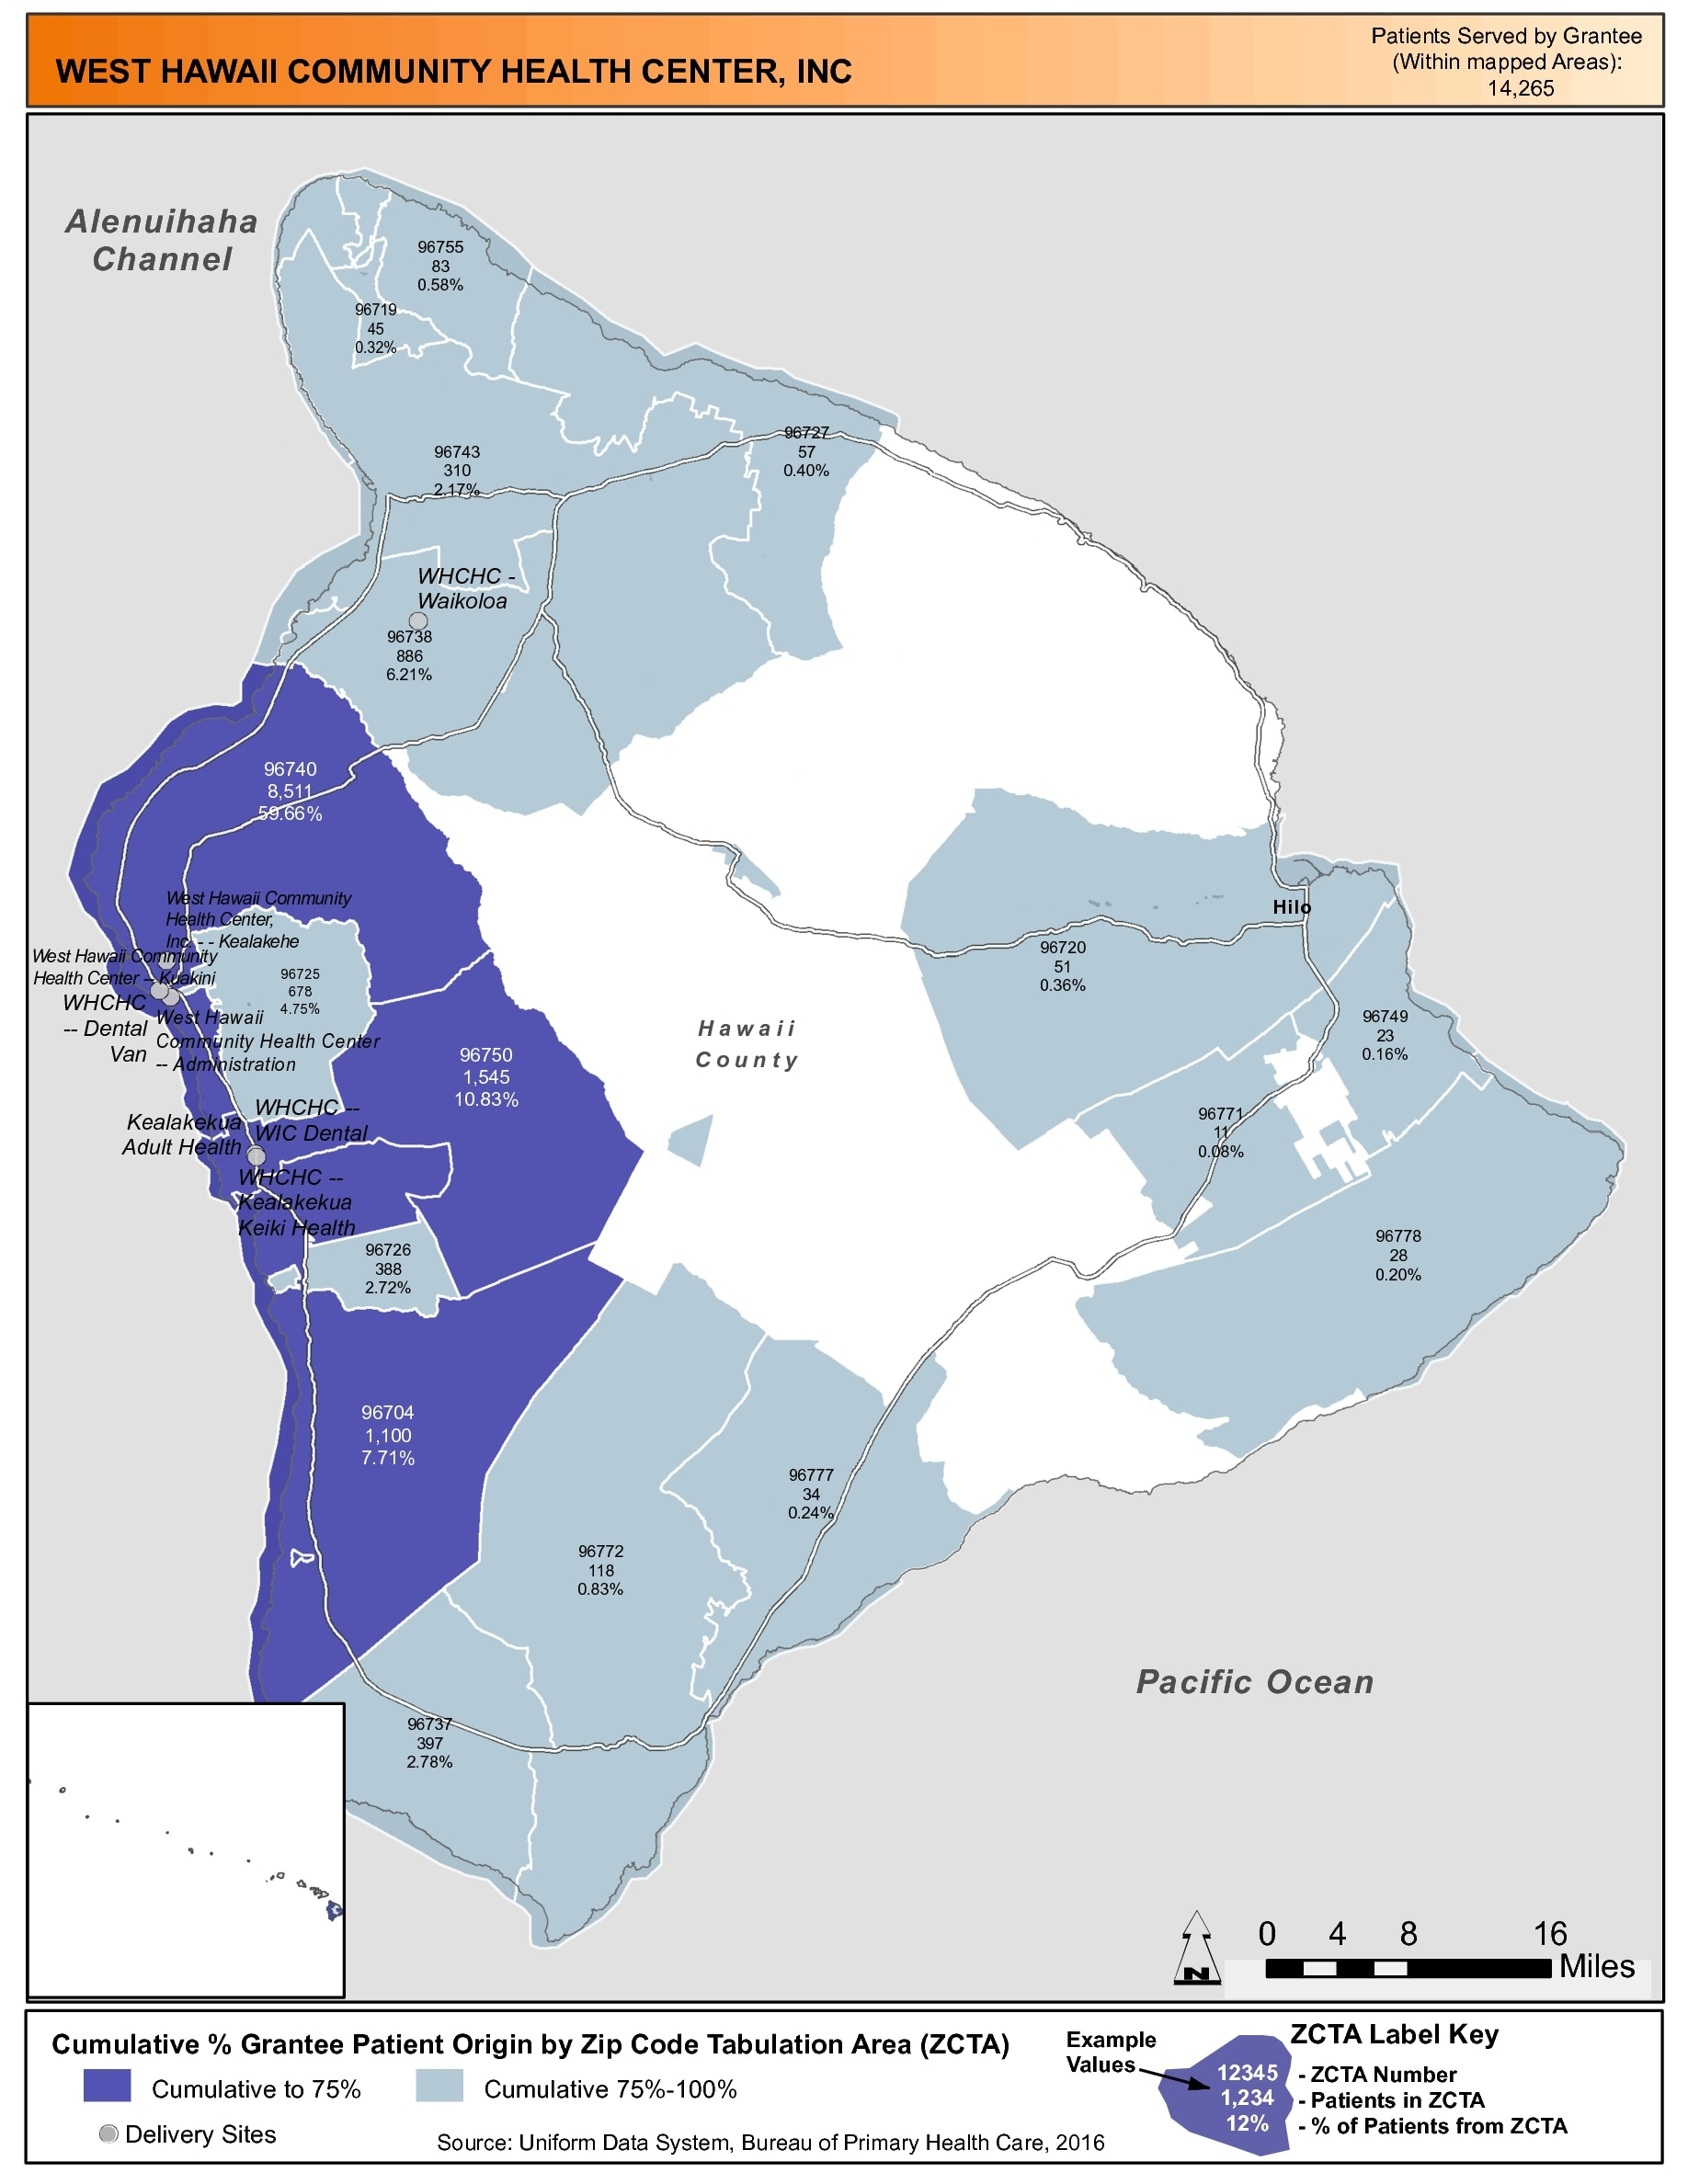 2016 west hawaii community health center inc health center profile service area map gumiabroncs